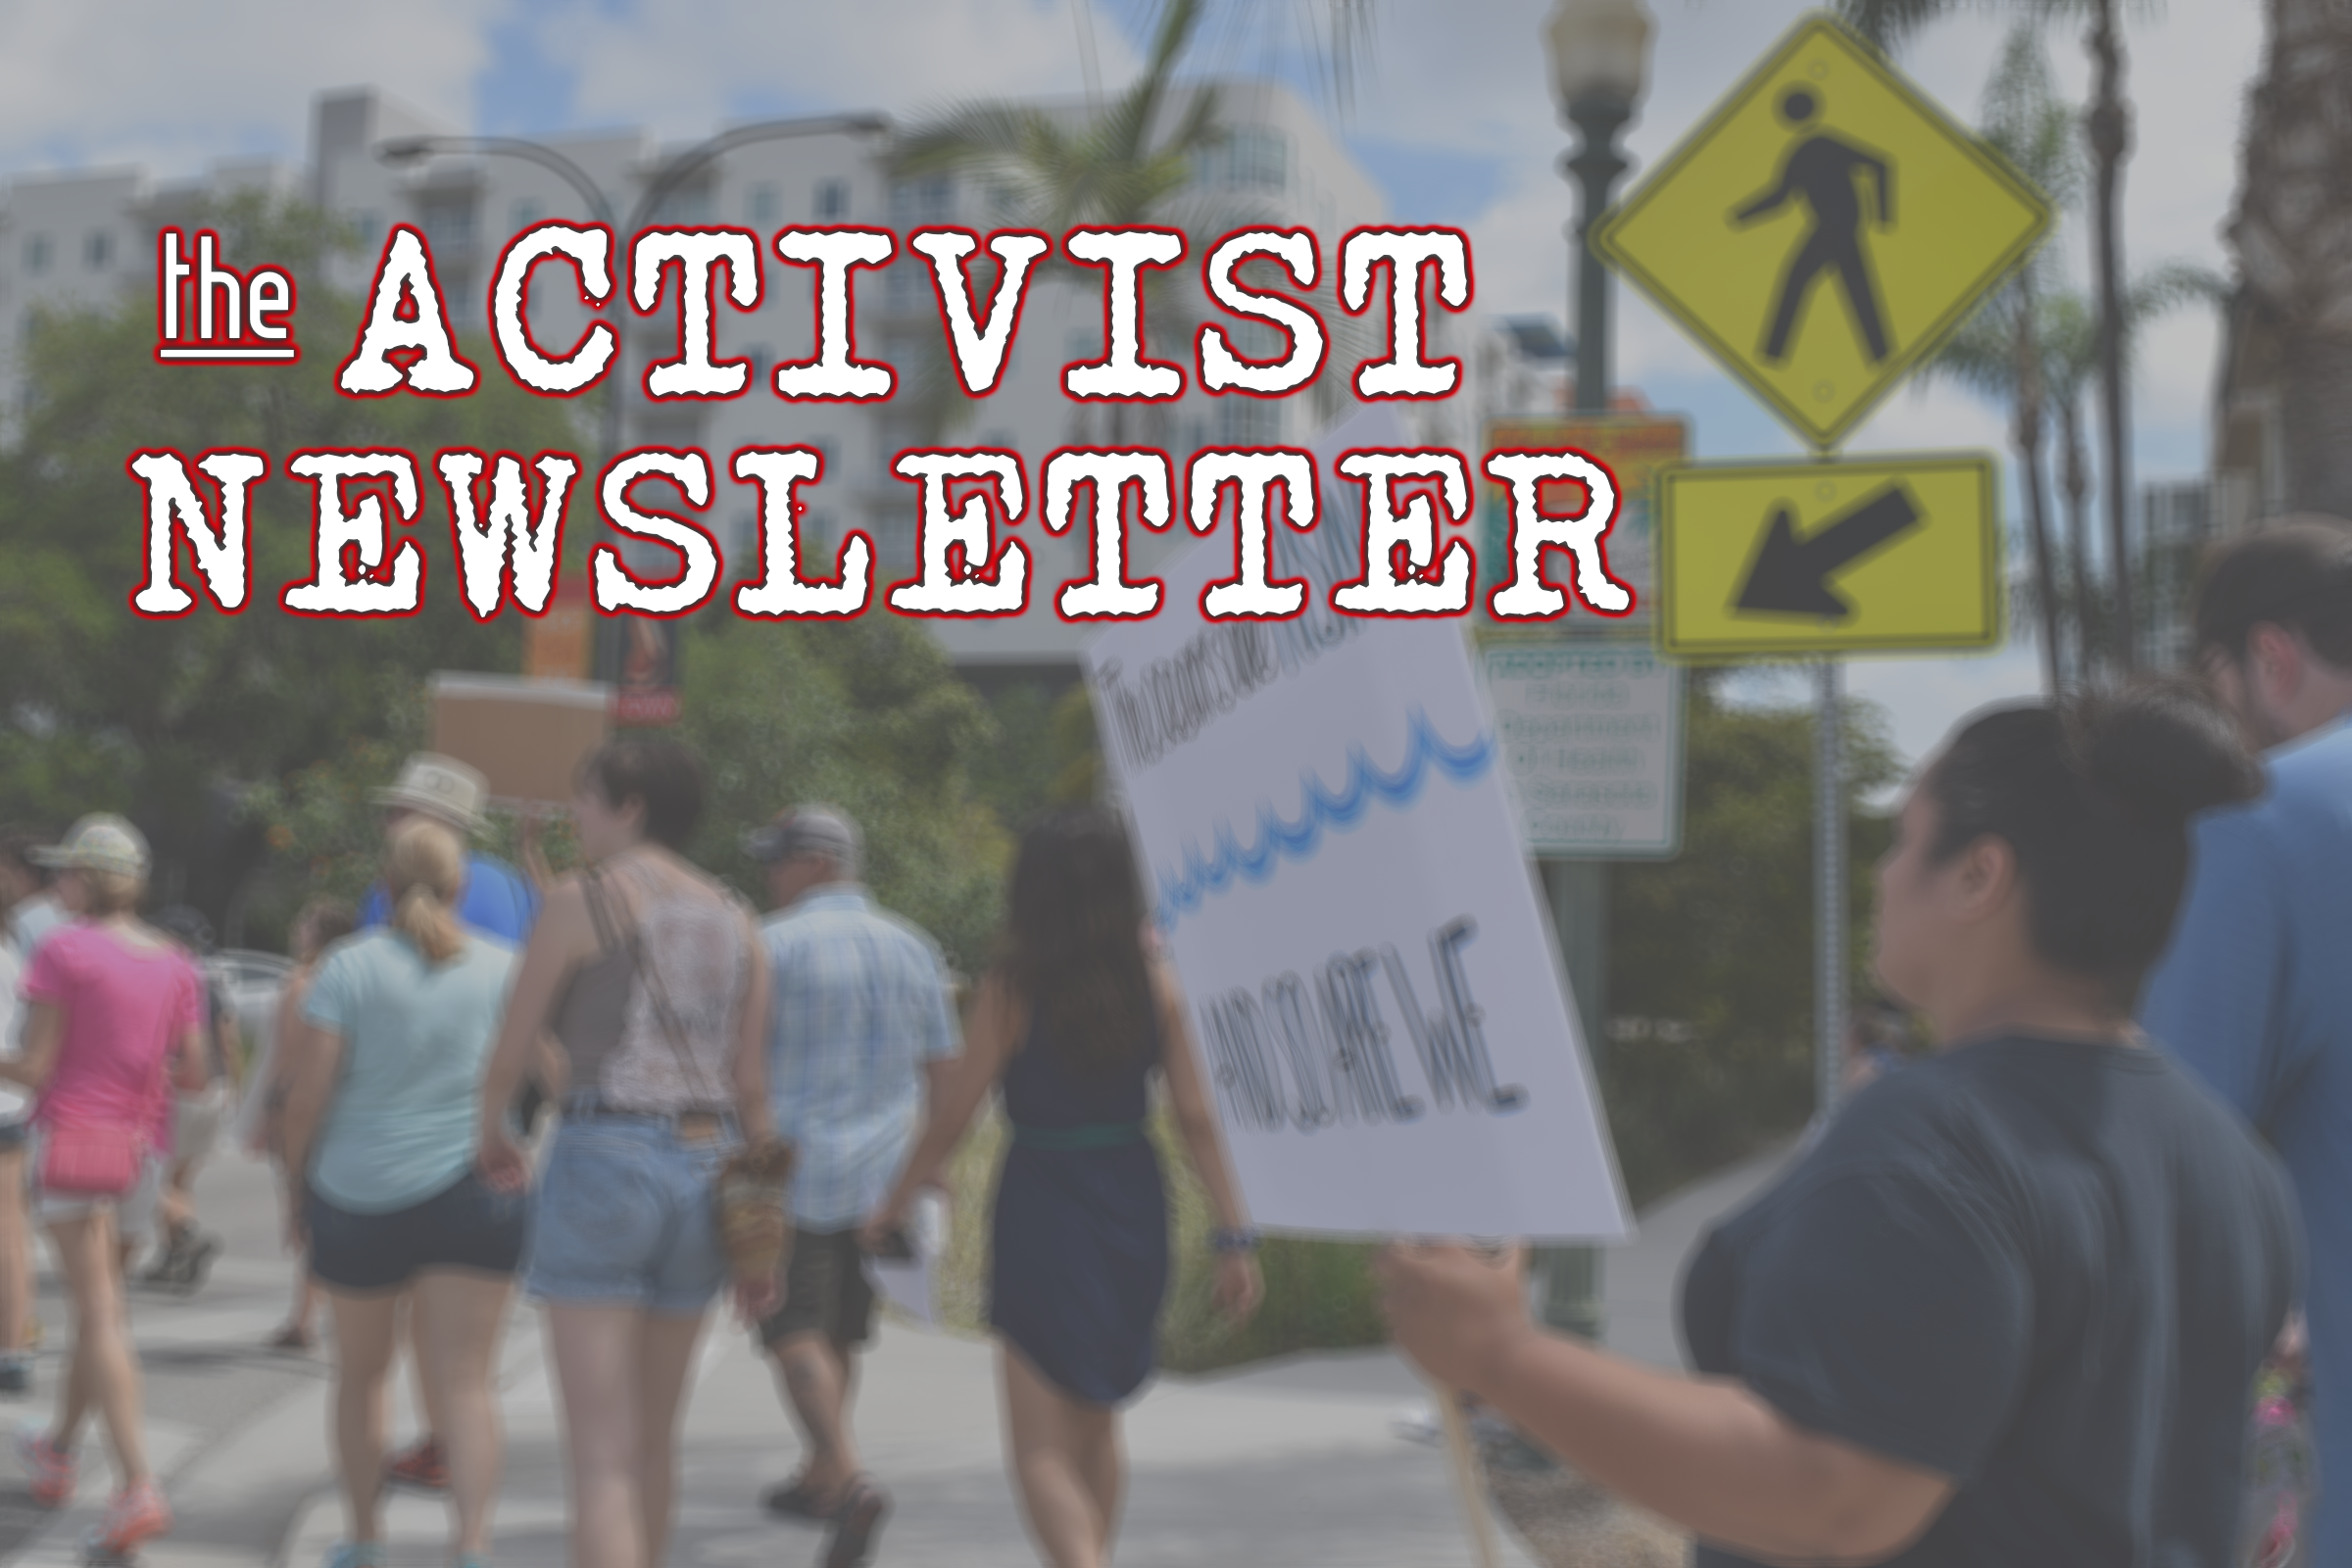 The Activist Newsletter